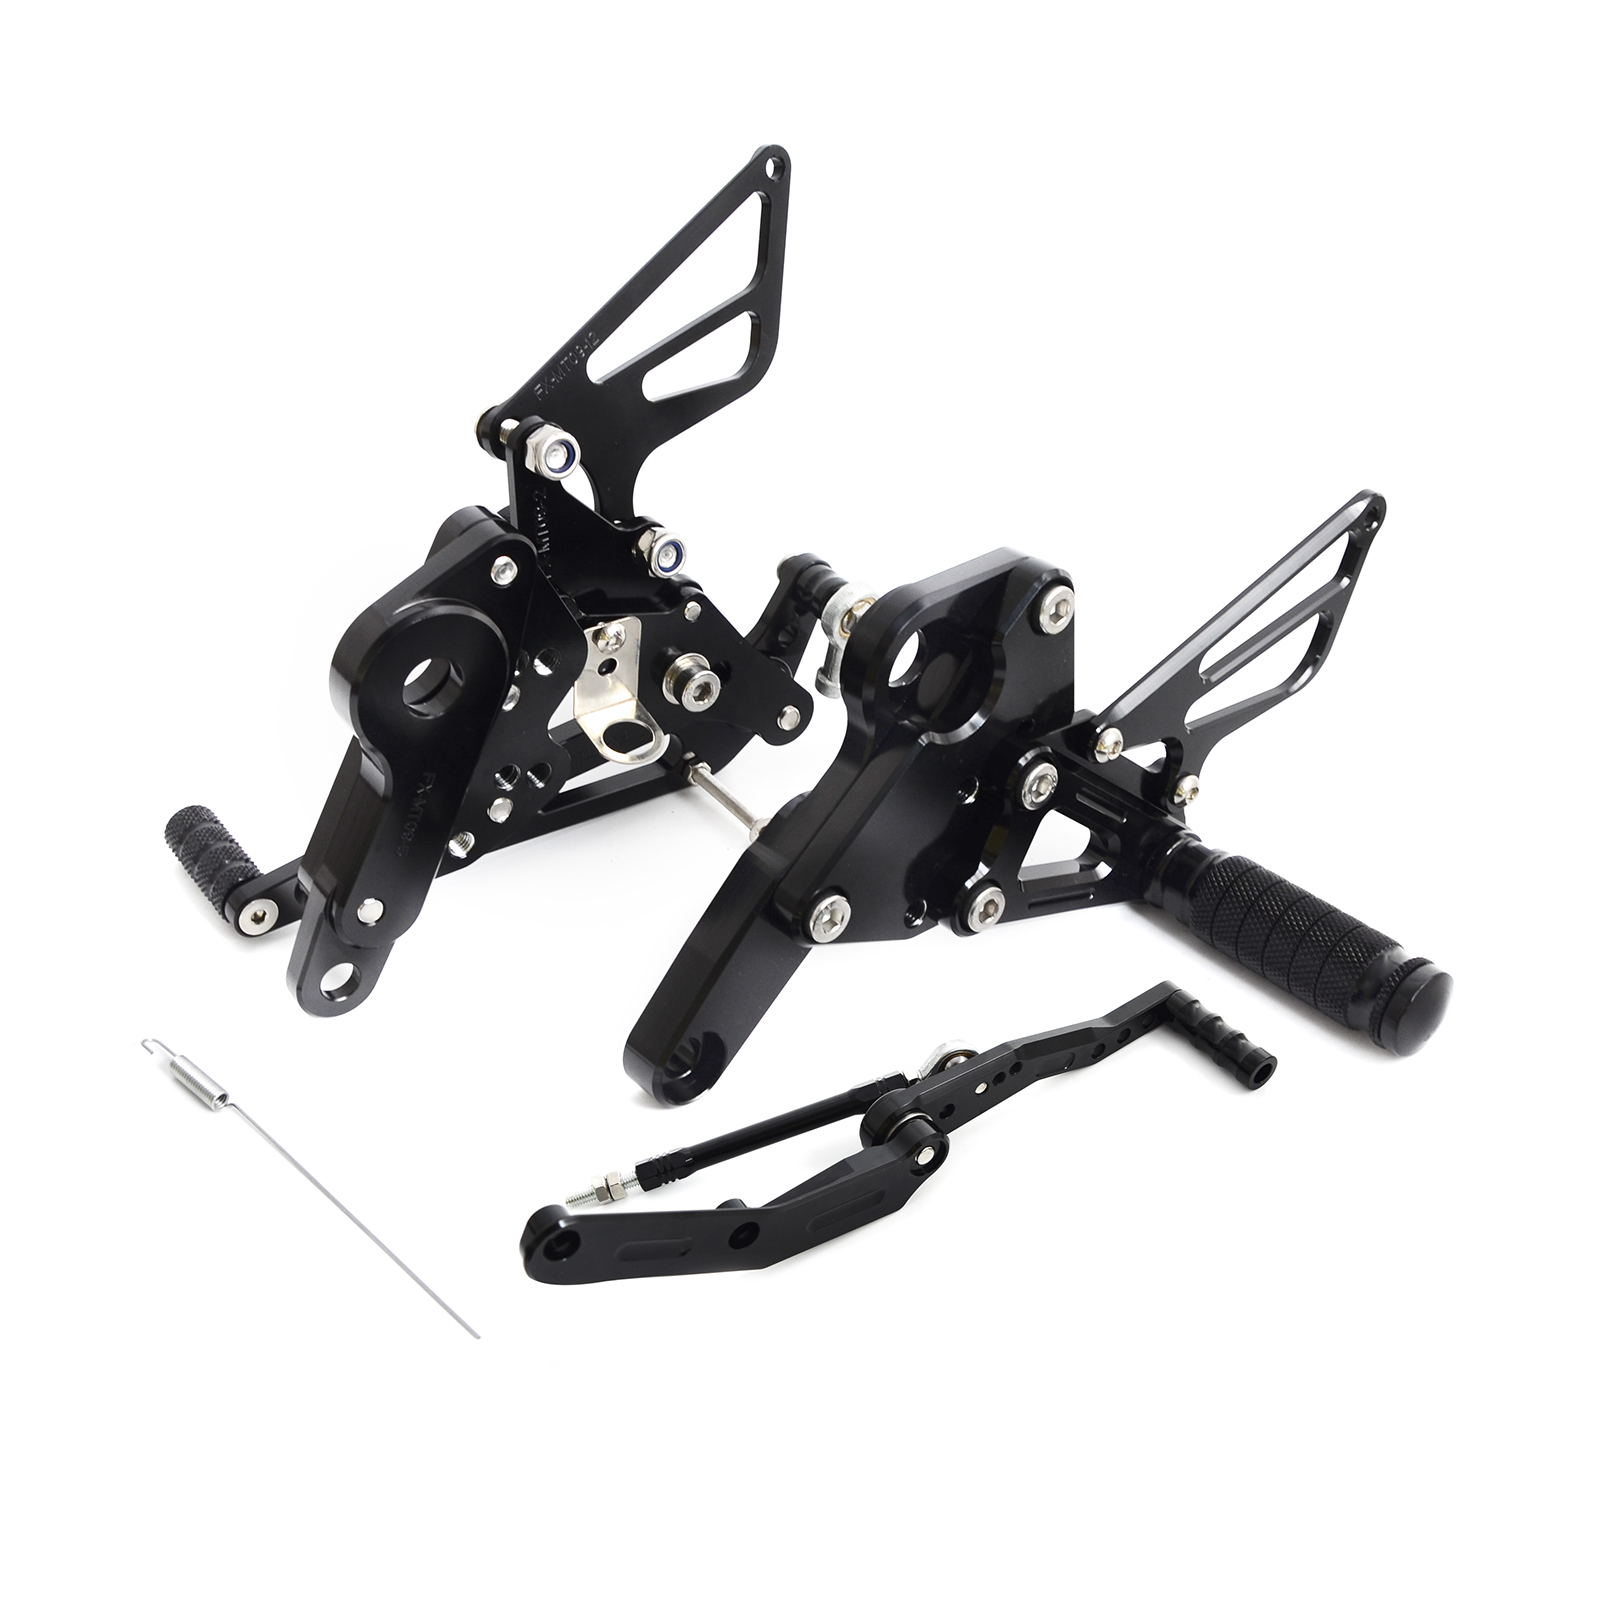 Racing Adjustable Rearsets Foot Rest Peg Rear Set For For Yamaha  MT-09 MT09 FZ09 FZ-09 2013 2014 2015 2016 раскладушка therm a rest therm a rest luxurylite mesh xl